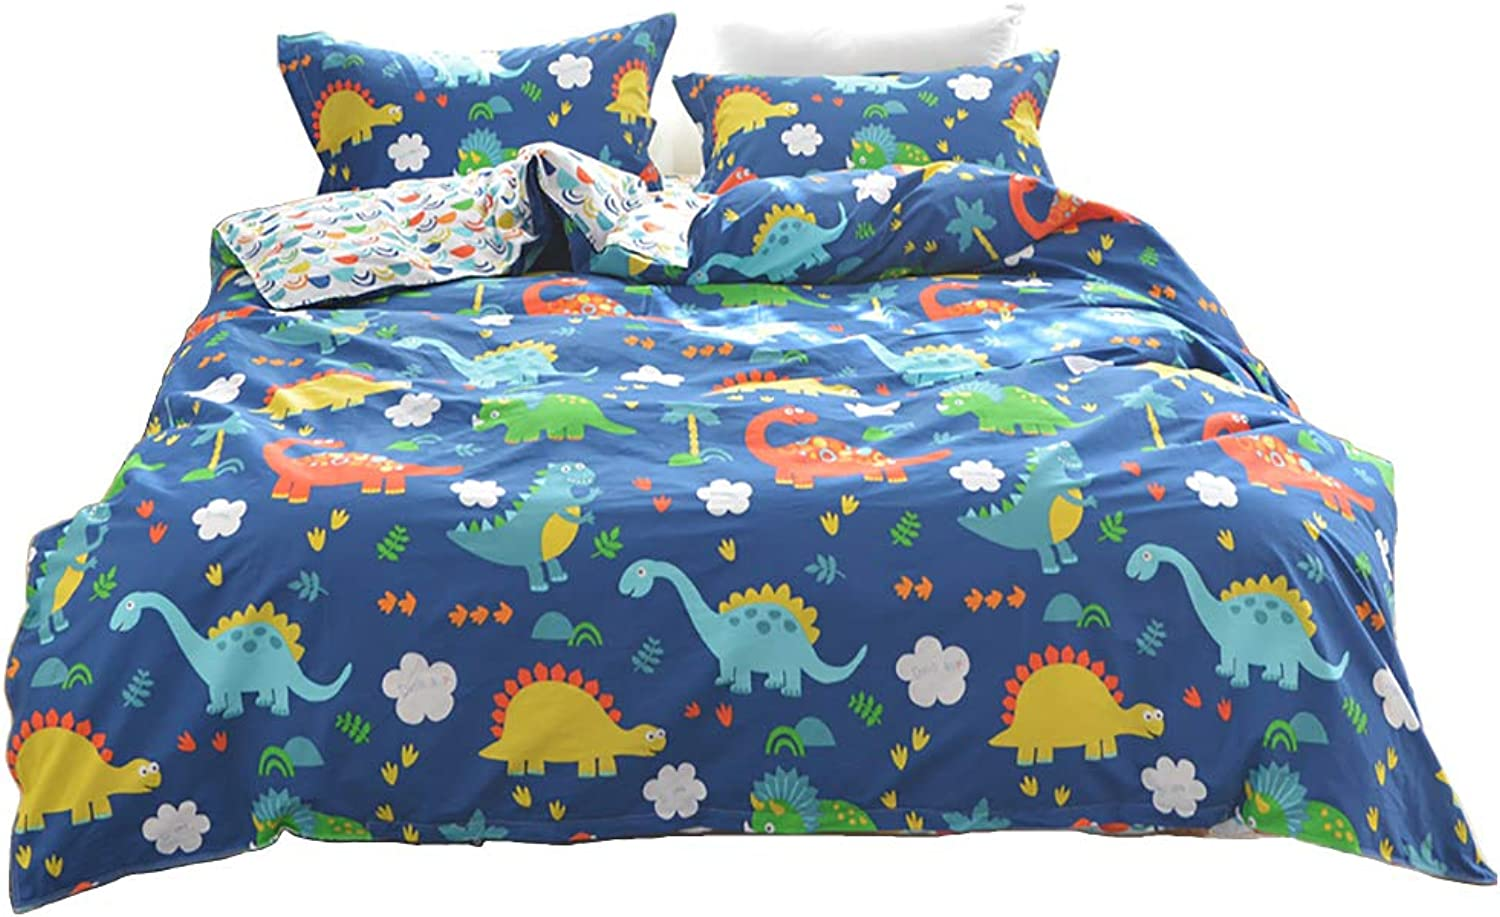 Warm Embrace 100 Percent Cotton Duvet Cover Set Dinosaur Pattern bluee Boys Bedding,Duvet Cover and Pillowcases,Full Queen Size,3 Piece